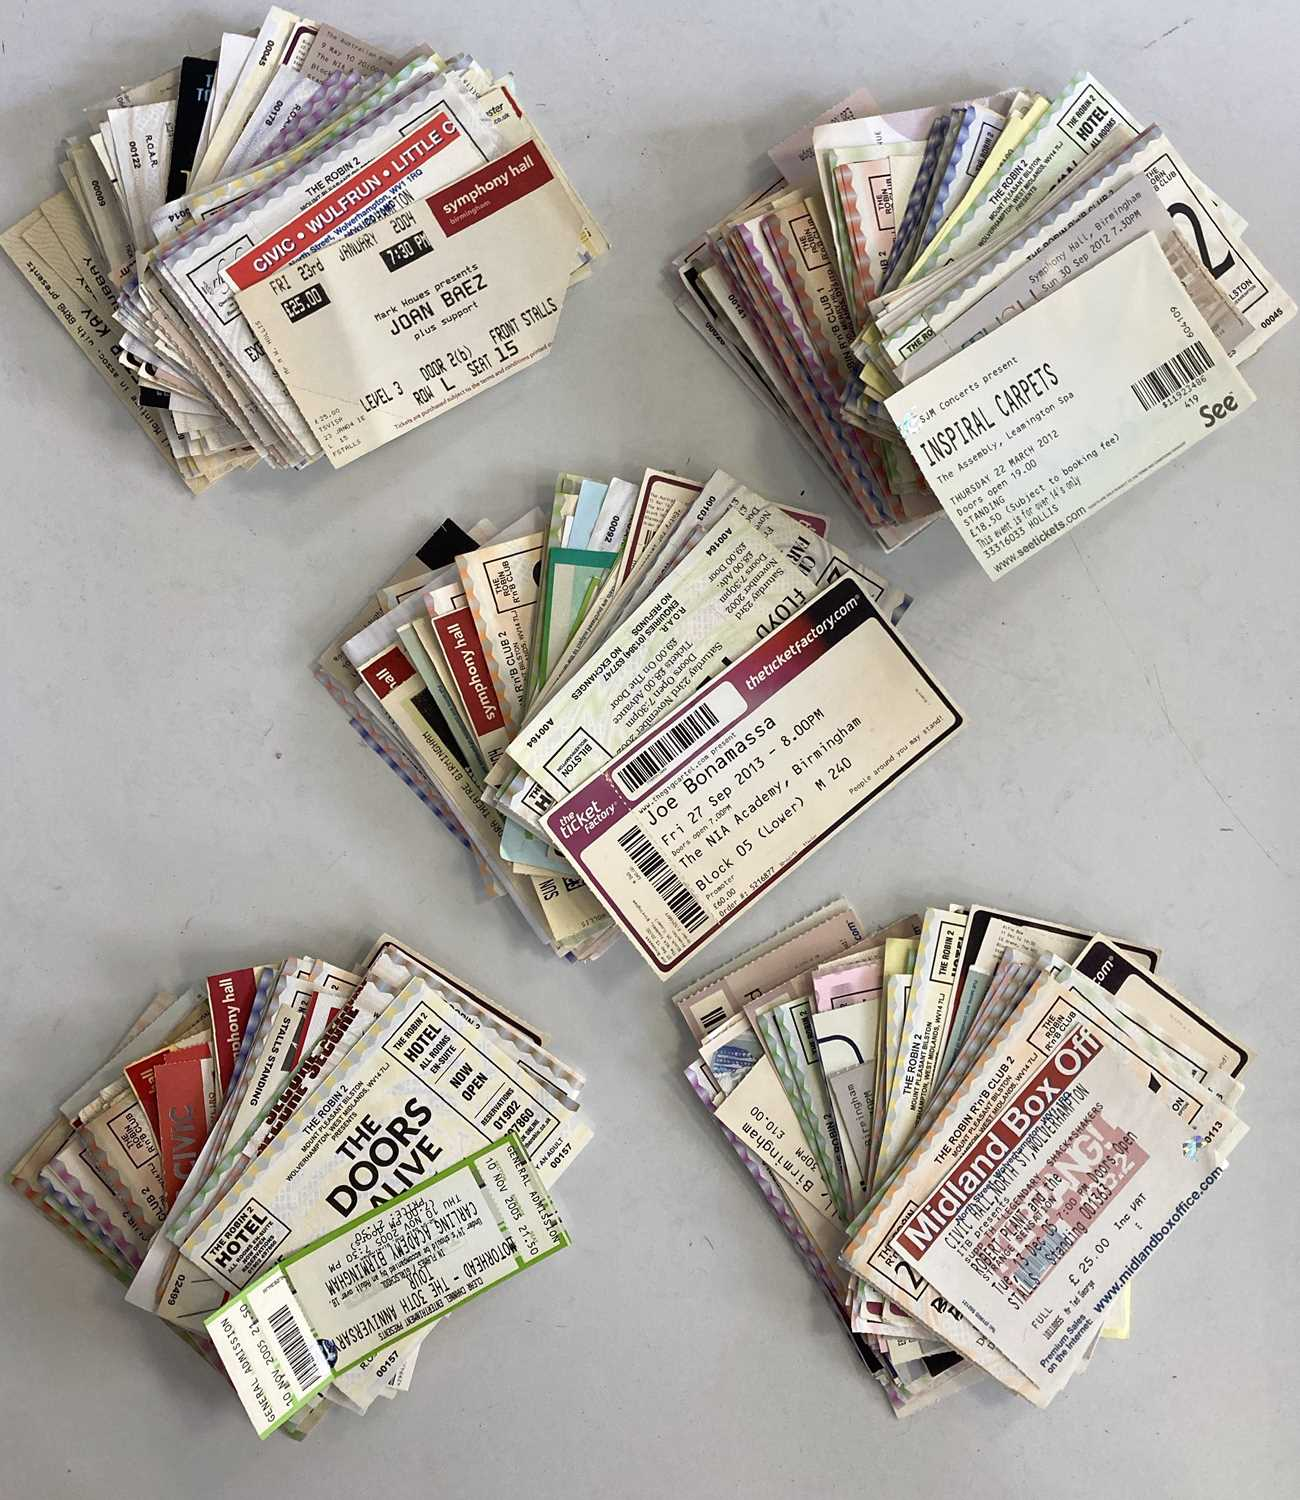 00s CONCERT TICKET ARCHIVE - SOME SIGNED.